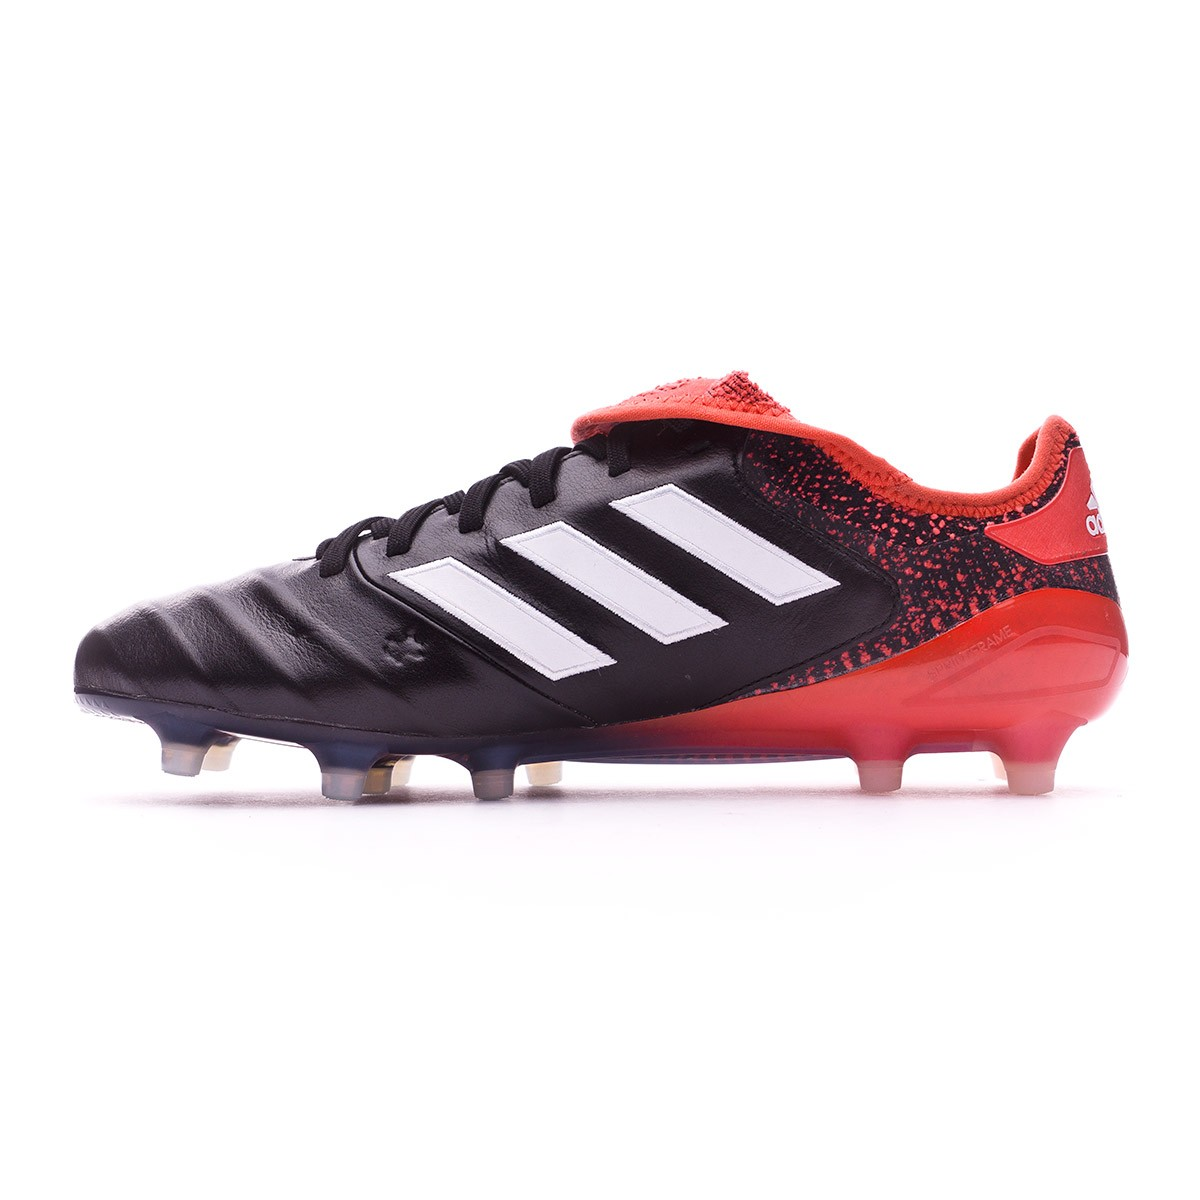 f8356ab04d6 Football Boots adidas Copa 18.1 FG Core black-White-Real coral - Football  store Fútbol Emotion